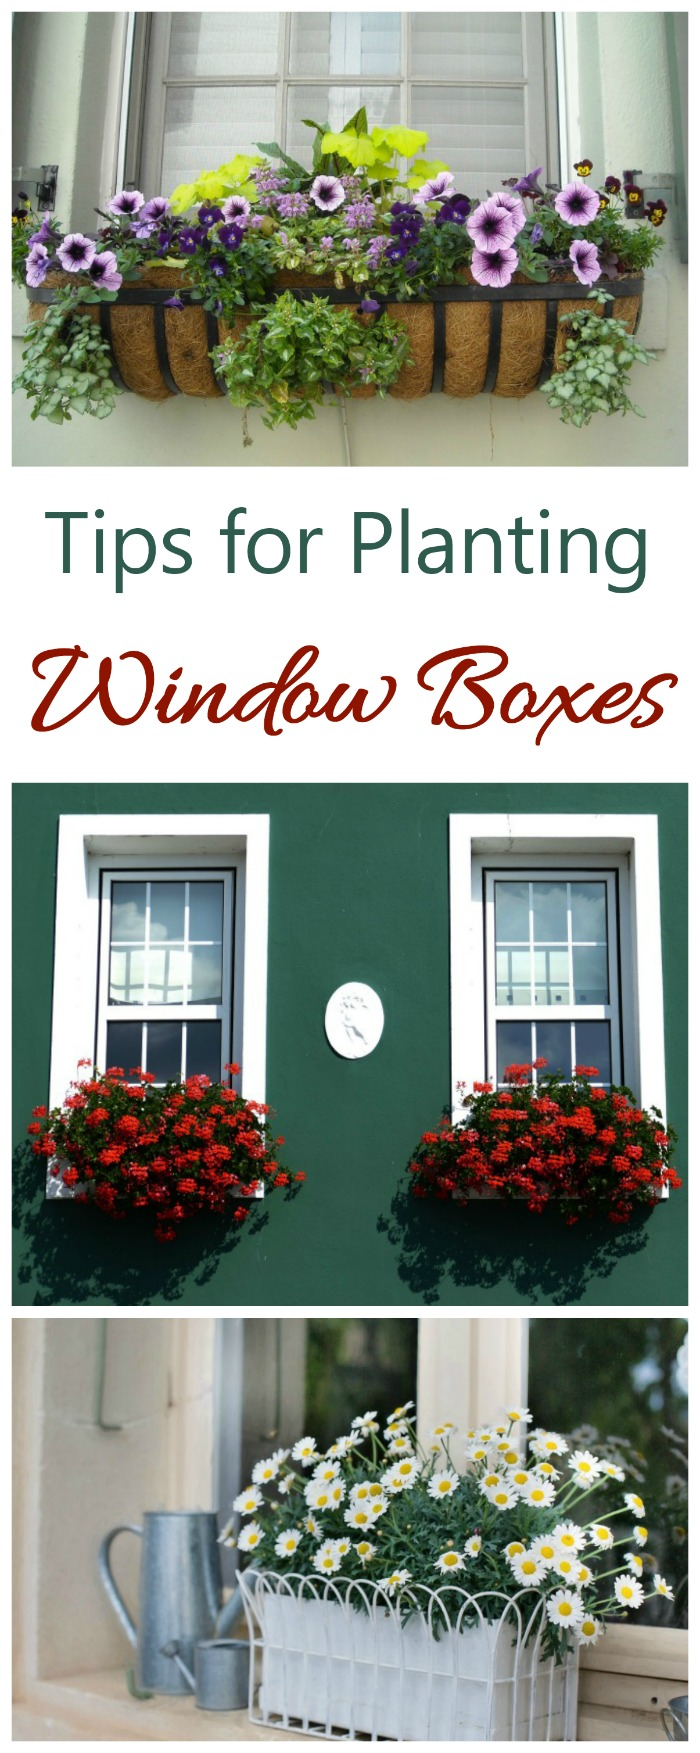 Window boxes add instant curb appeal to your home.These tips will show you how to plant and use them. #windowboxes #curbappeal